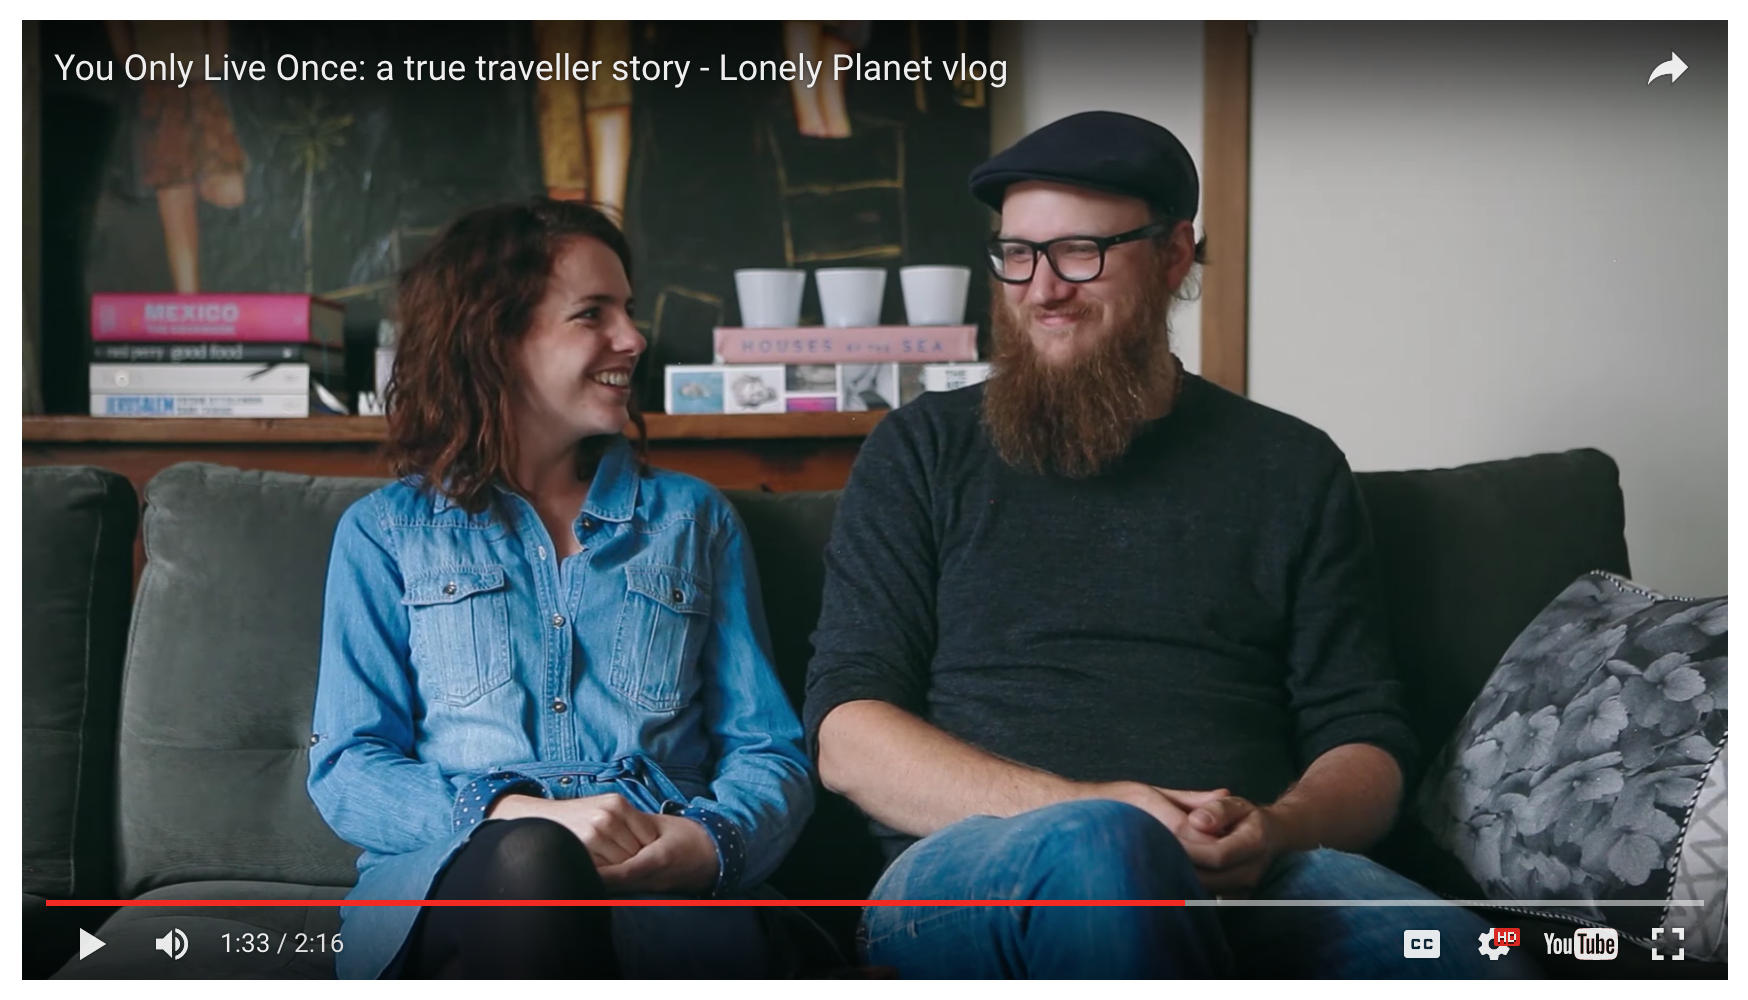 Lonely Planet video